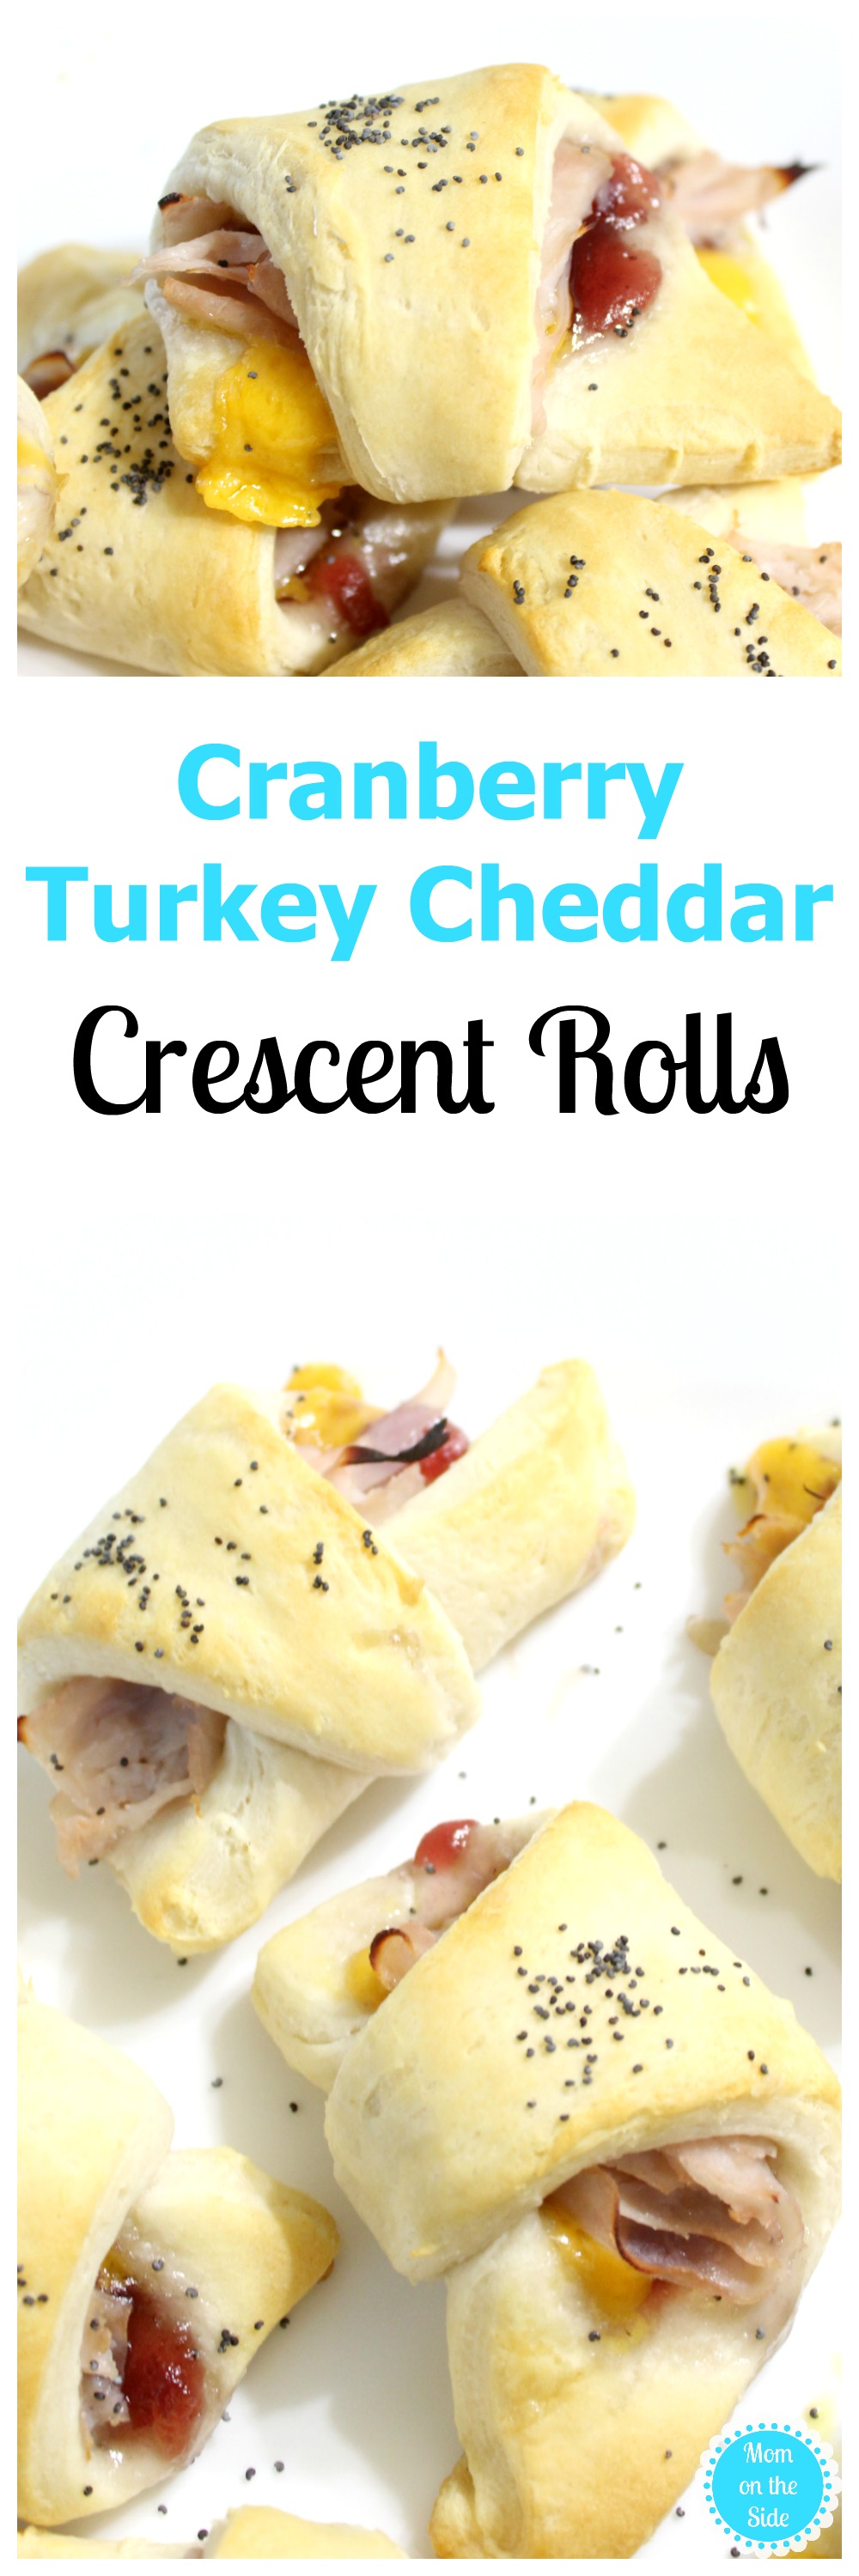 Thanksgiving Recipe for Cranberry Turkey Cheddar Crescent Rolls that are a great appetizer or perfect for leftover turkey after Thanksgiving dinner!